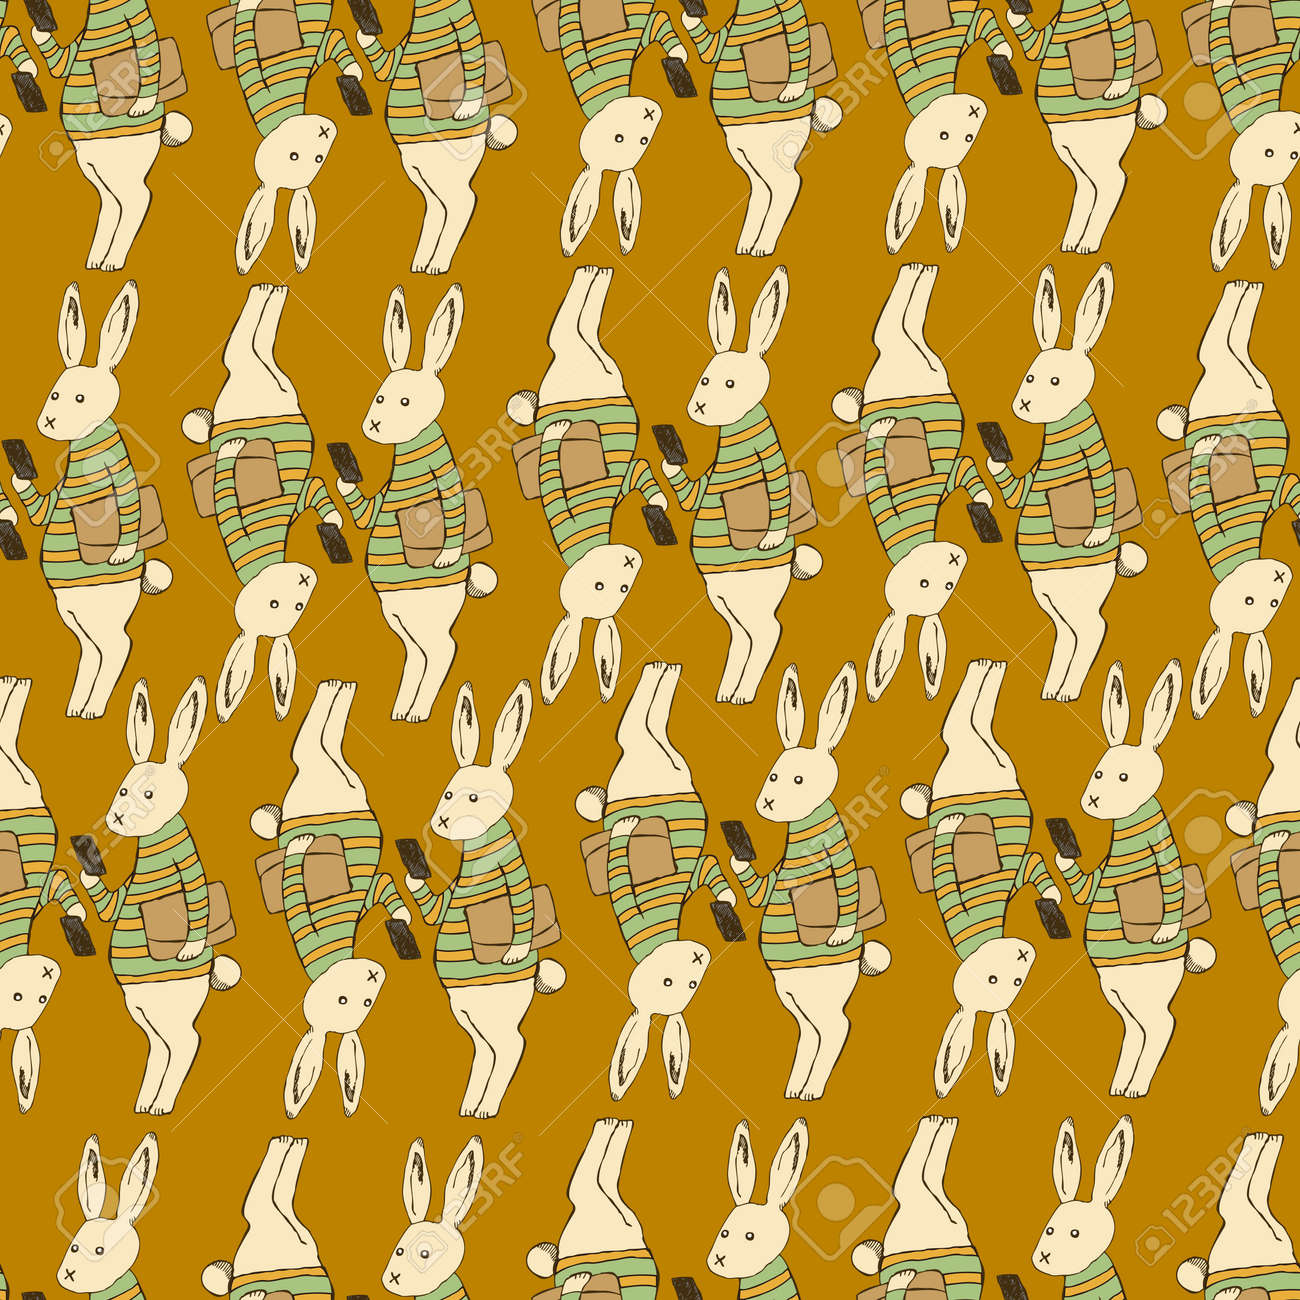 Smartphone and rabbit pattern. Seamless pattern. Material for wallpaper and wrapping paper. Textile design. - 169494548